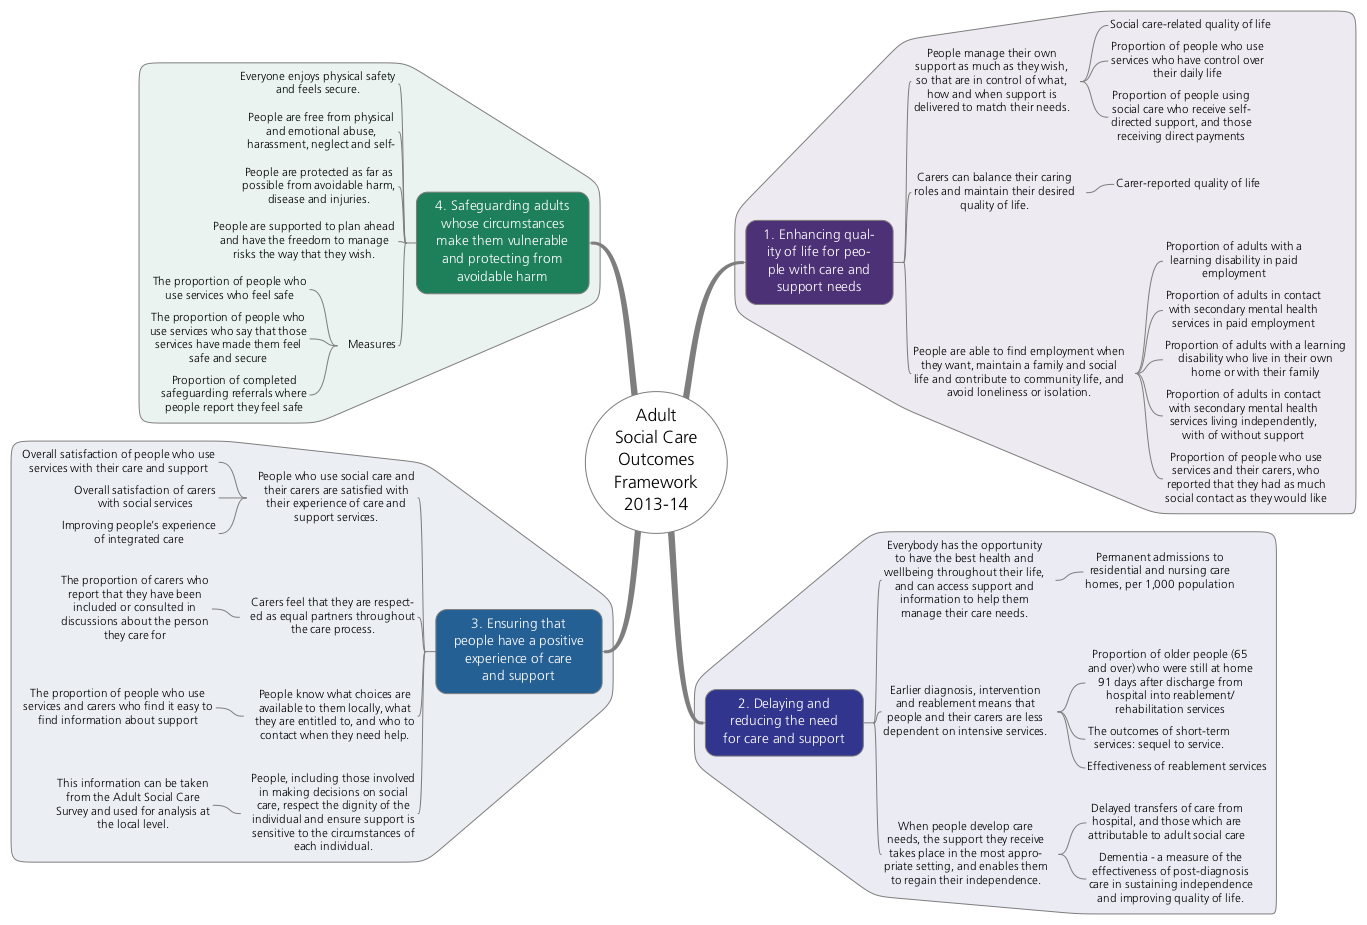 Adult Social Care Outcomes Framework 2013-14